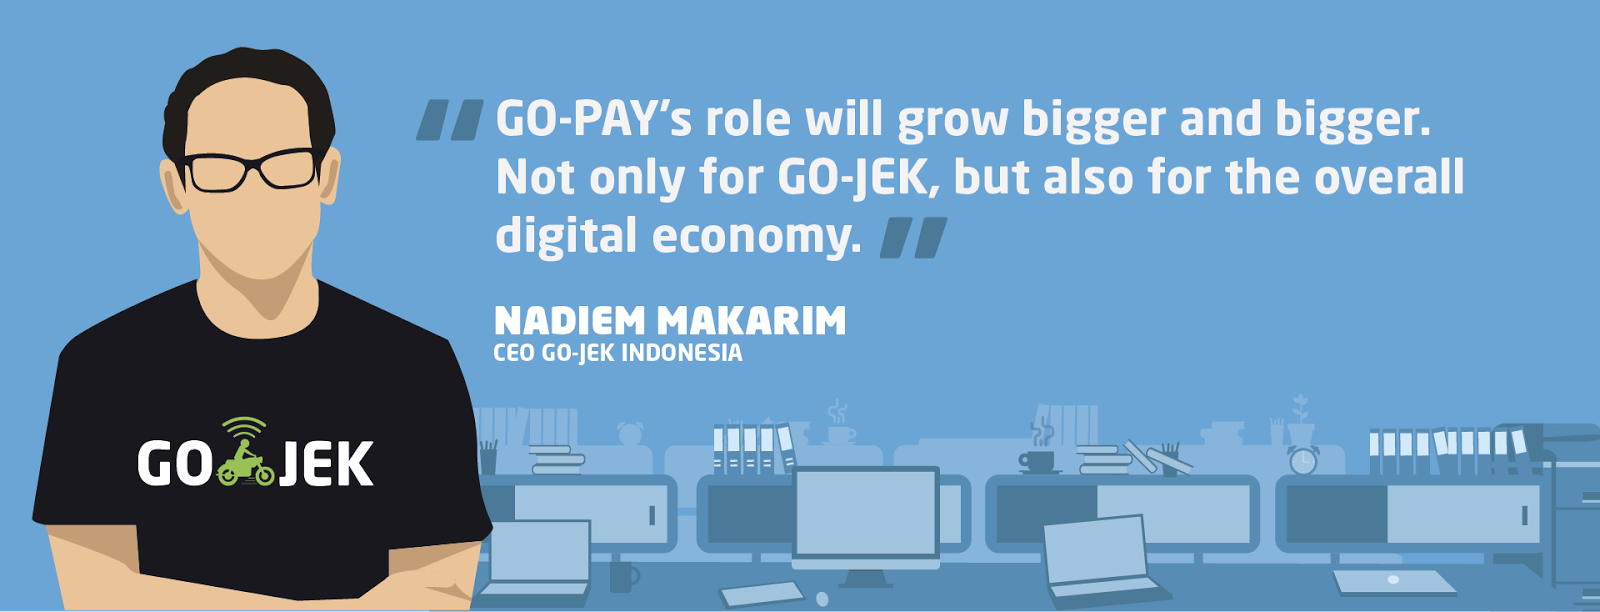 Easier Payments with GO-PAY - Gojek Product + Tech